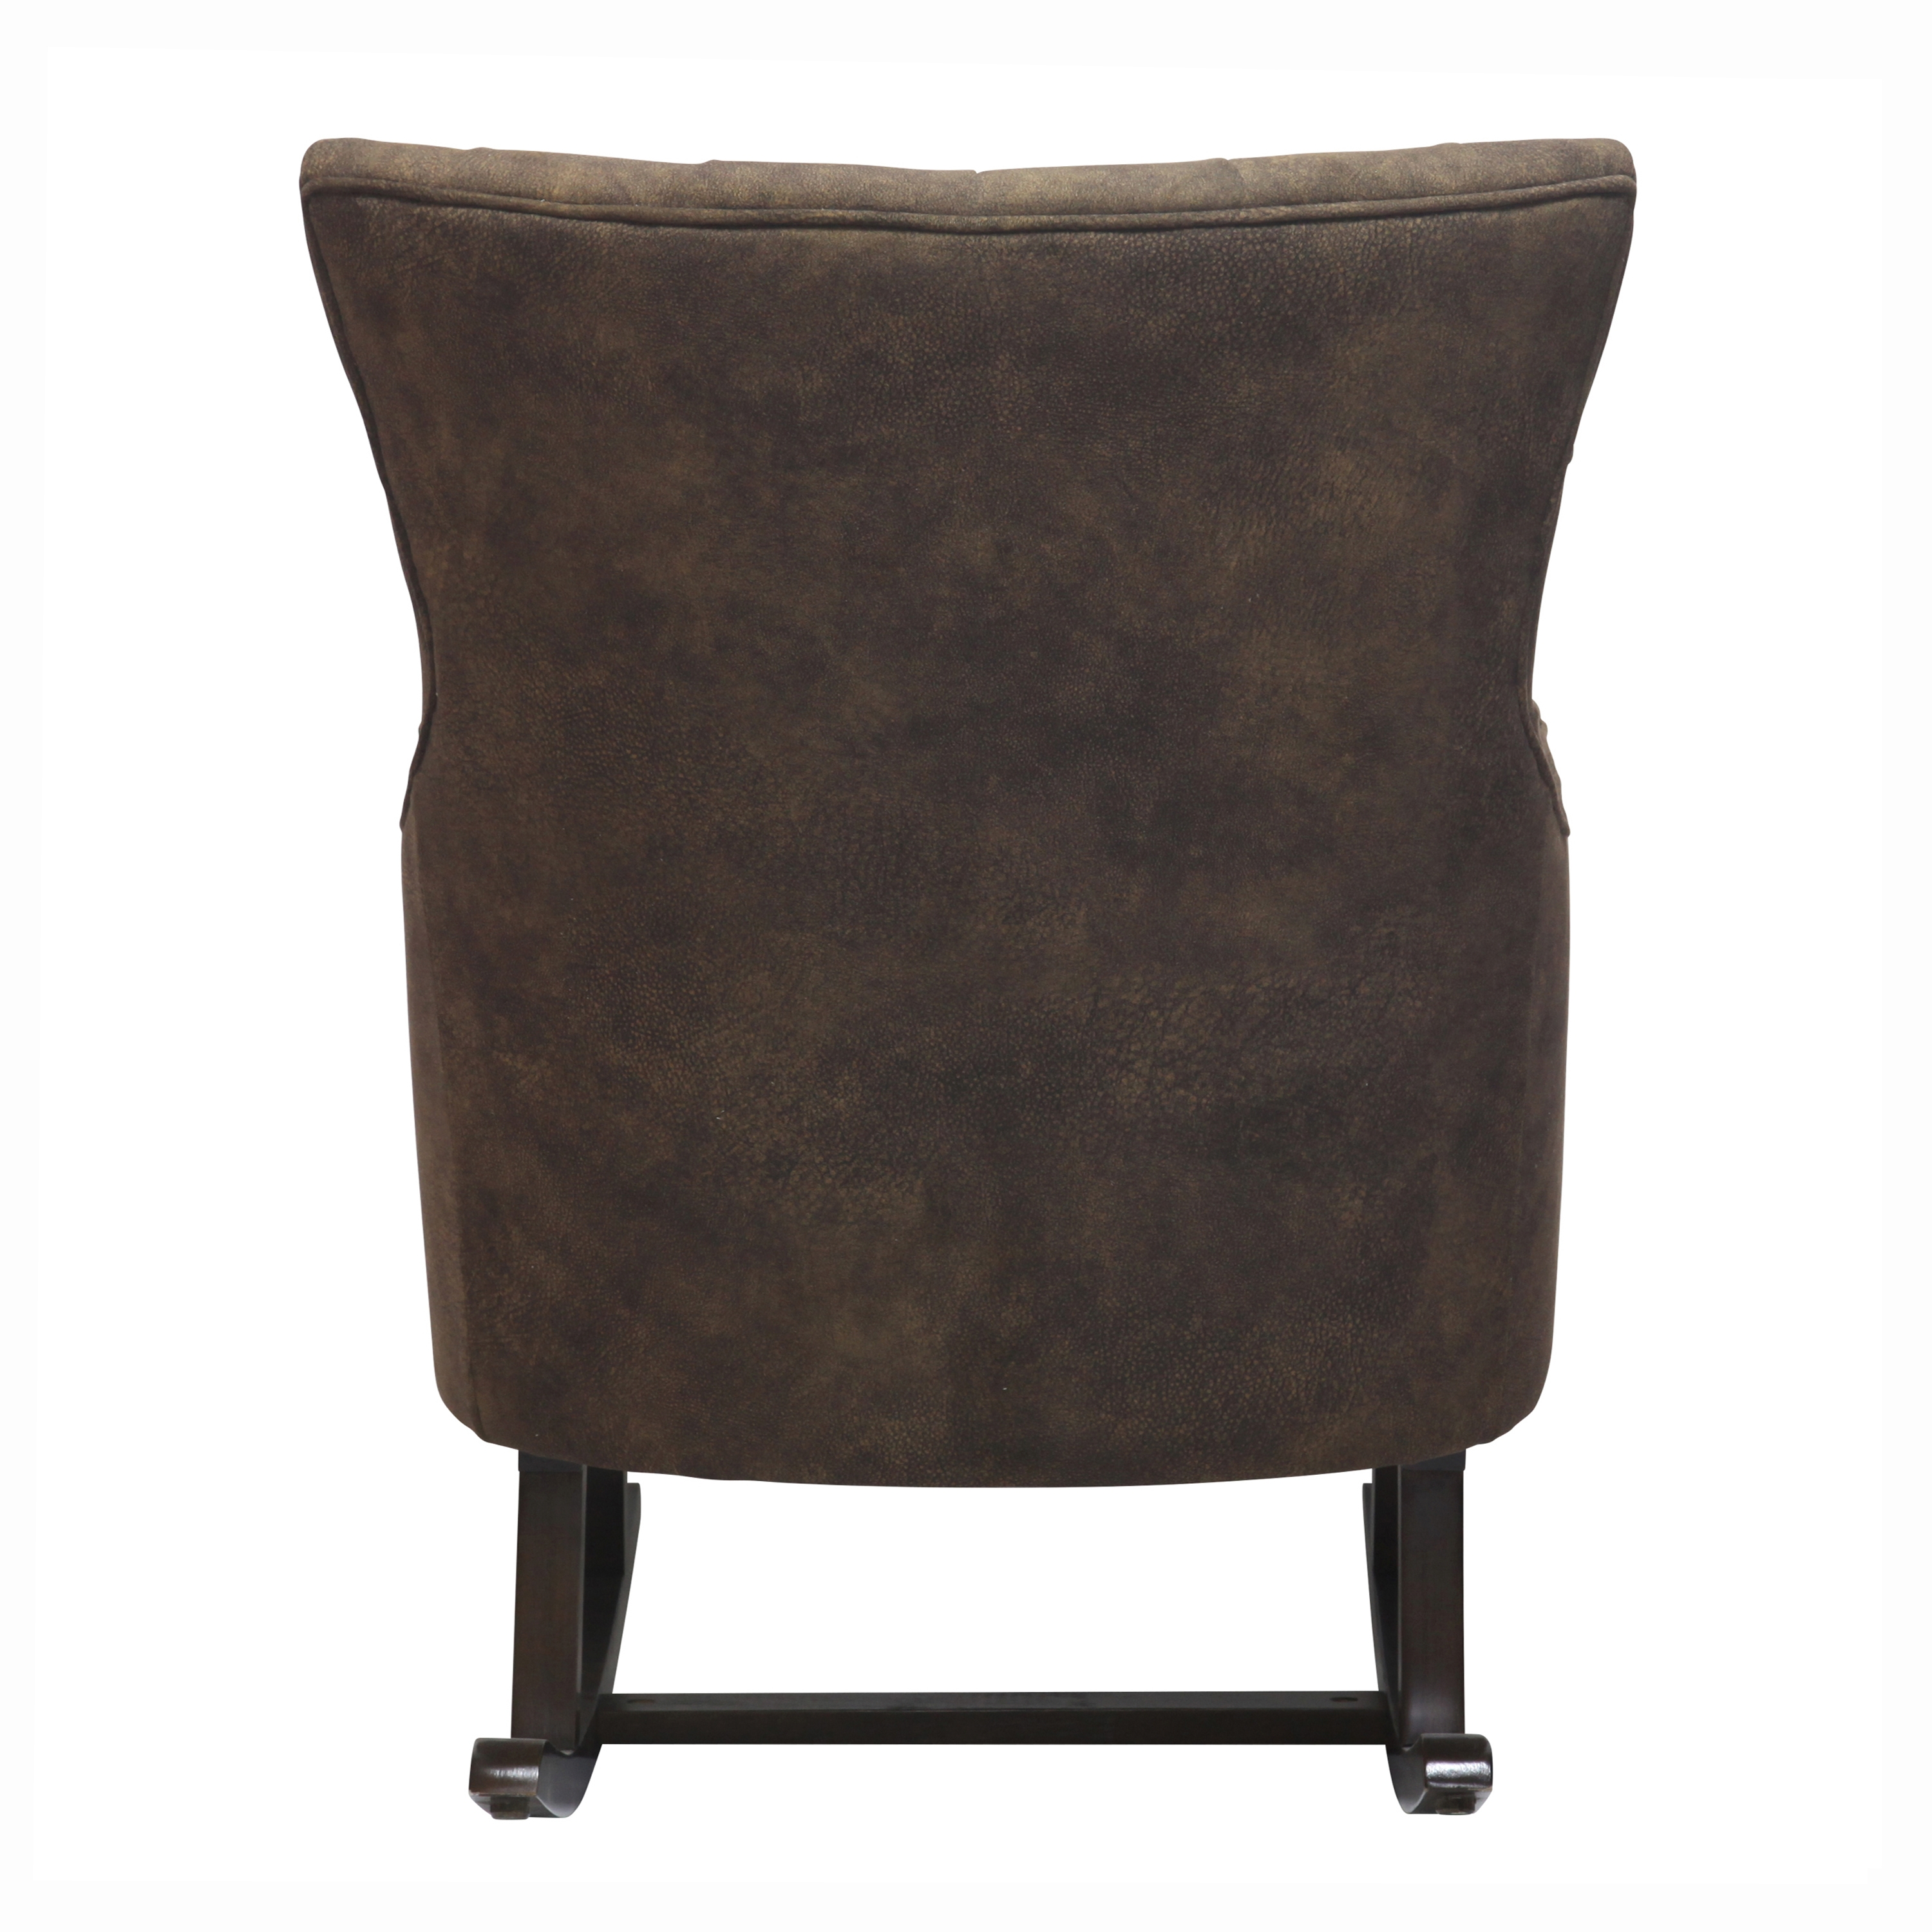 Abigail KD Fabric Tufted Rocking Chair Espresso Legs, Mocha Hide/3900015 150